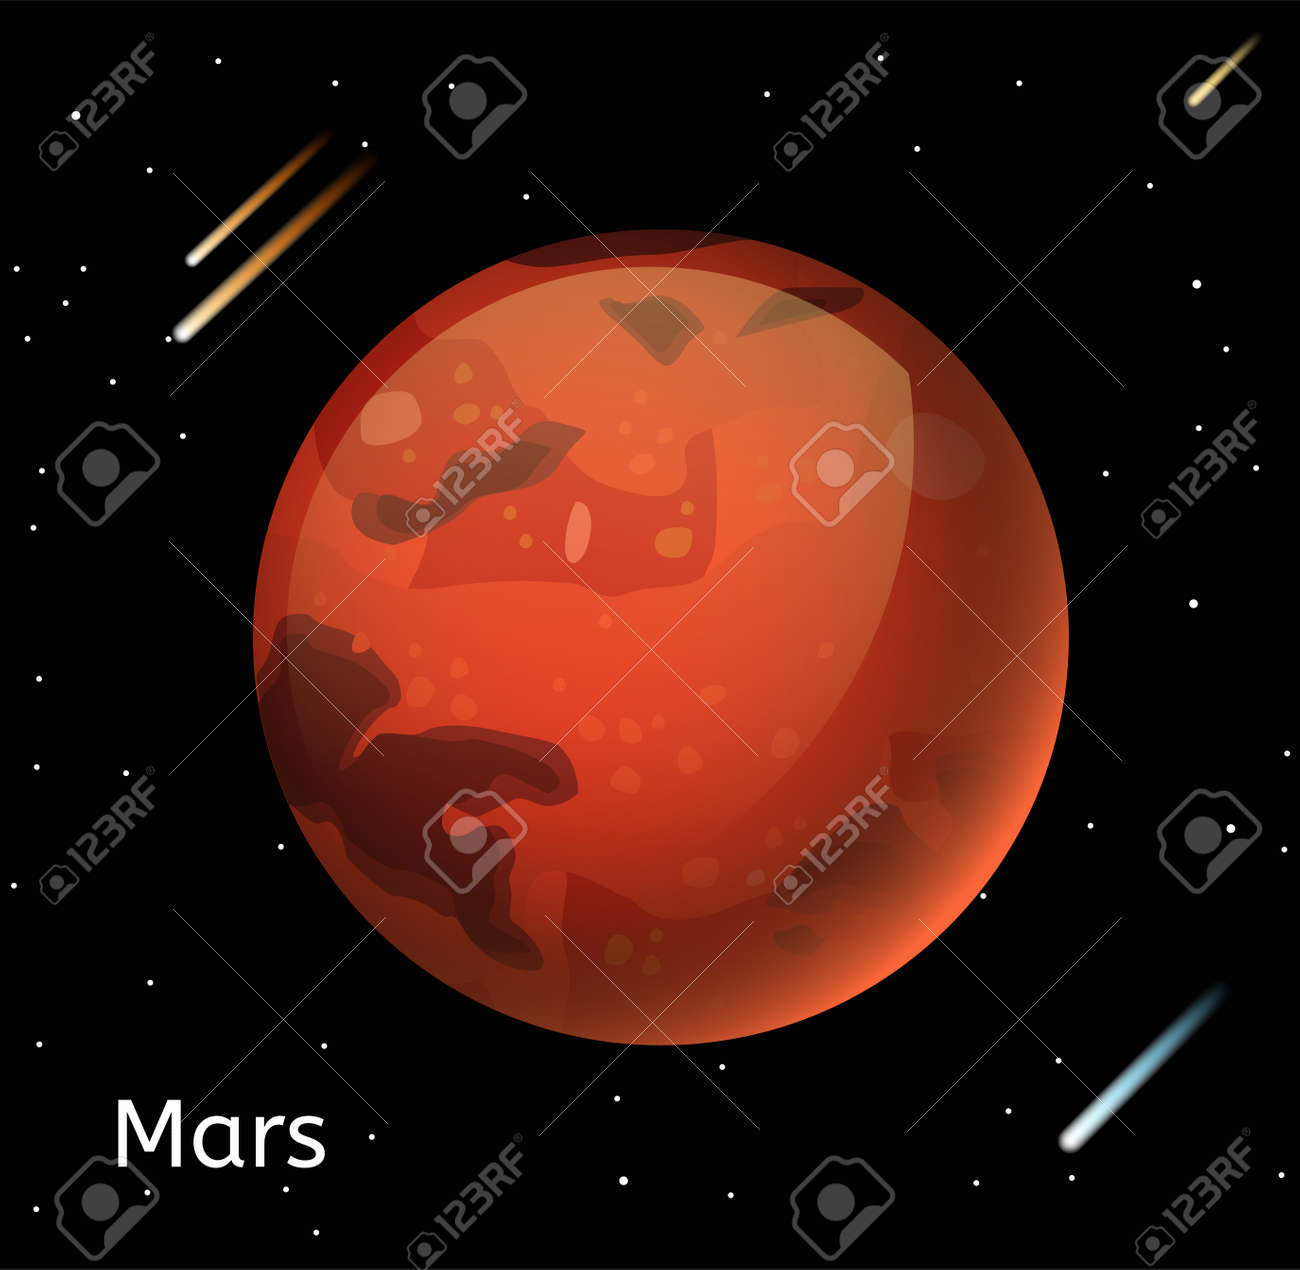 Mars planet 3d vector illustration globe mars texture map globe mars planet 3d vector illustration globe mars texture map globe vector mars view from gumiabroncs Image collections